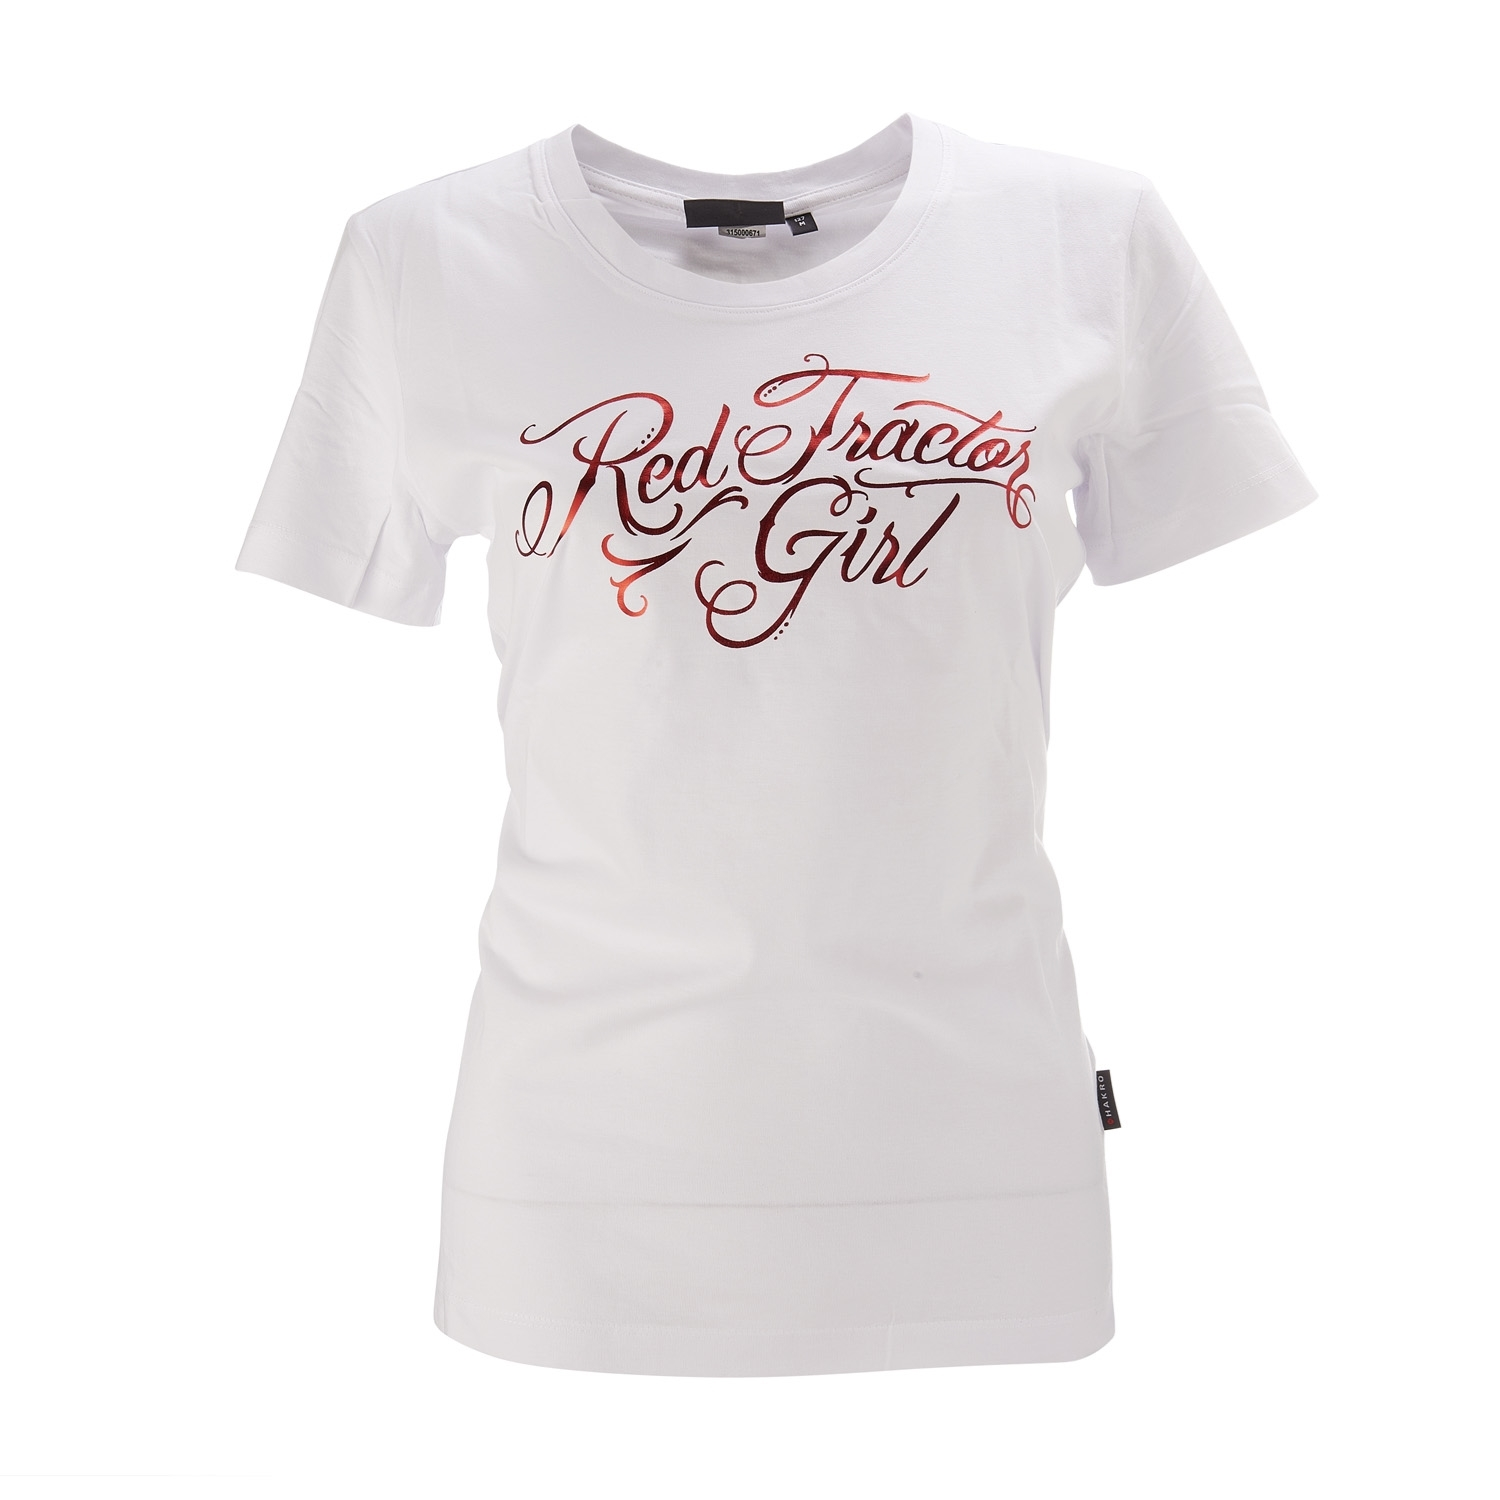 T shirt plain white back - Picture Of Women S Red Tractor Girl